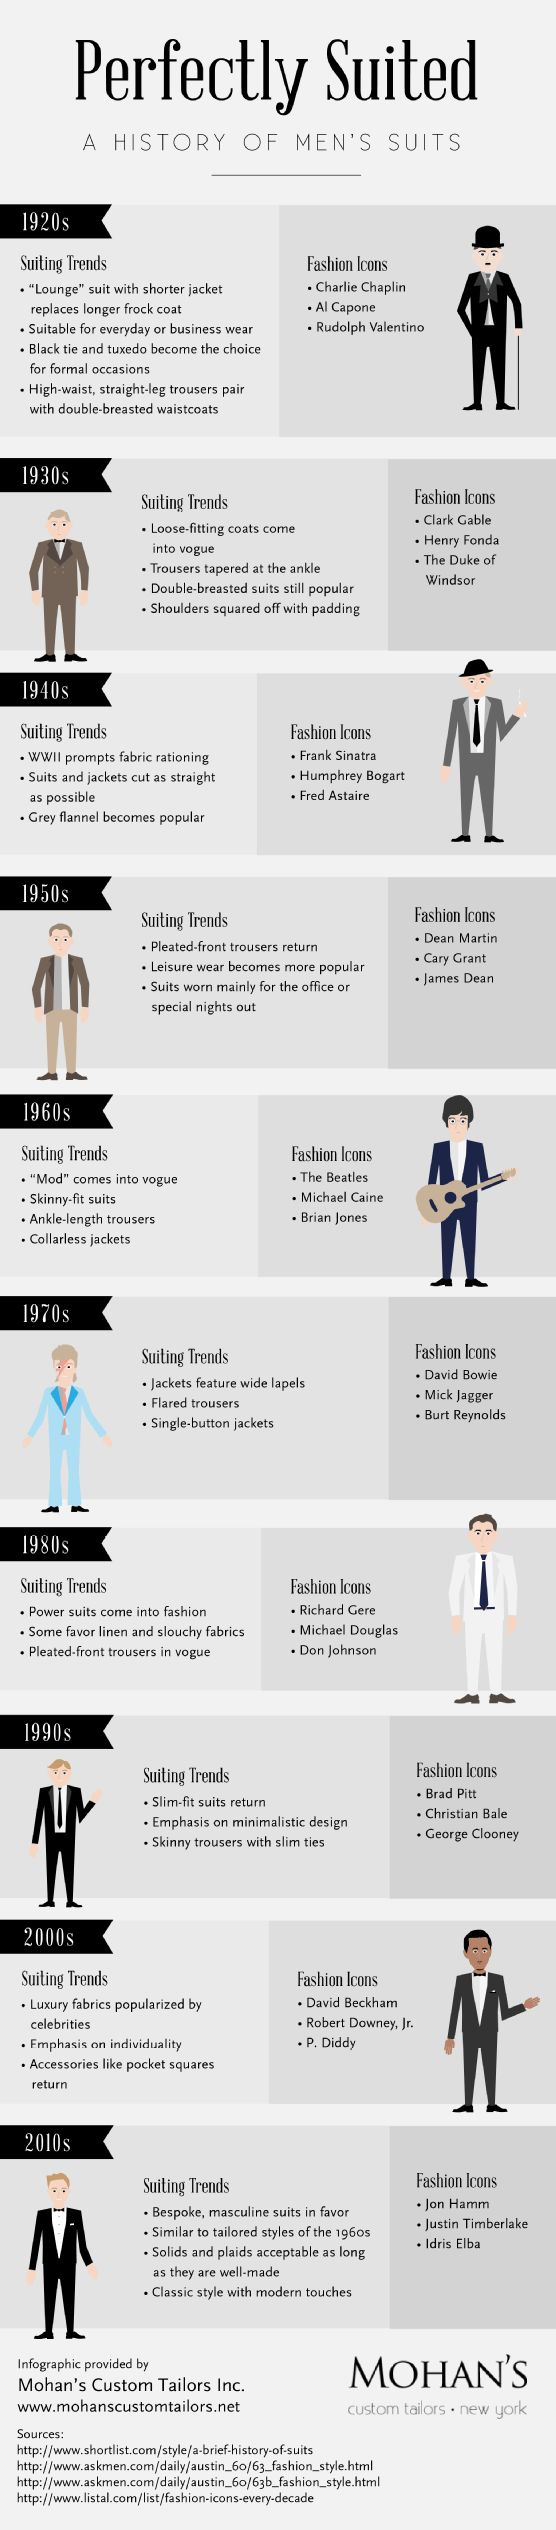 Infographic: History of Men's Suits